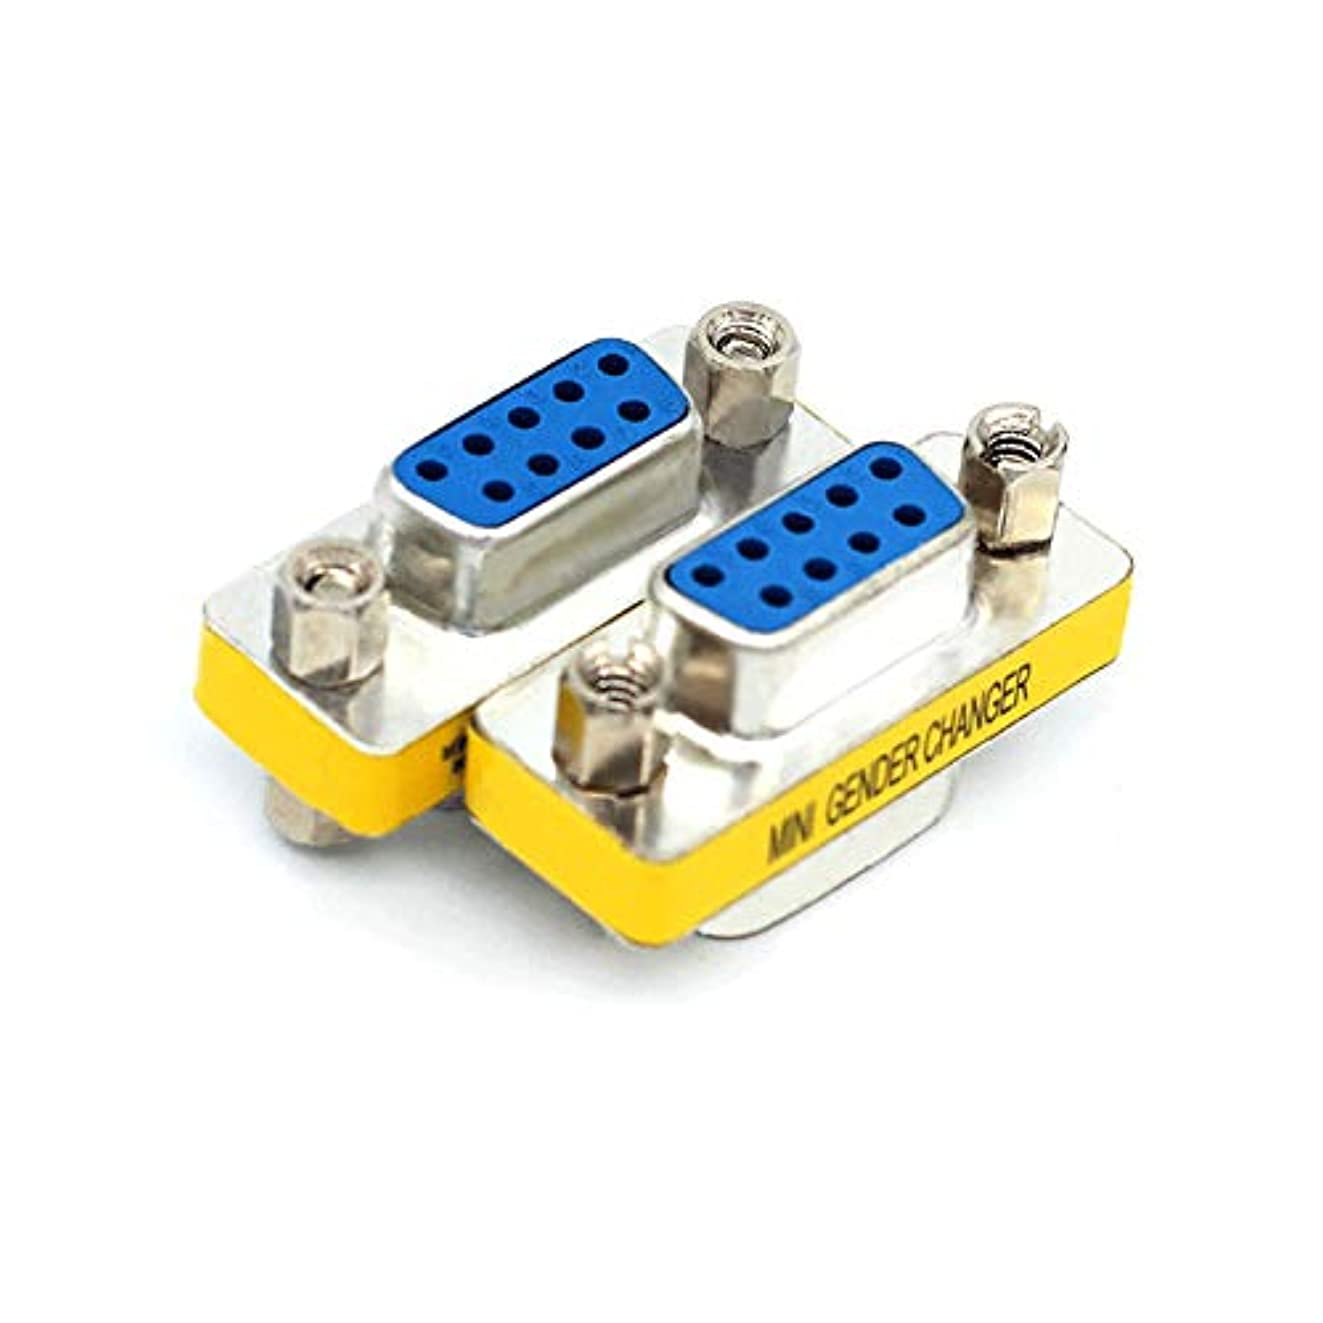 DB9 Female to Female,Gleewin 2-Pack 9 Pin RS232 DB9 F/F Serial RS232 Mini Gender Changer/Coupler